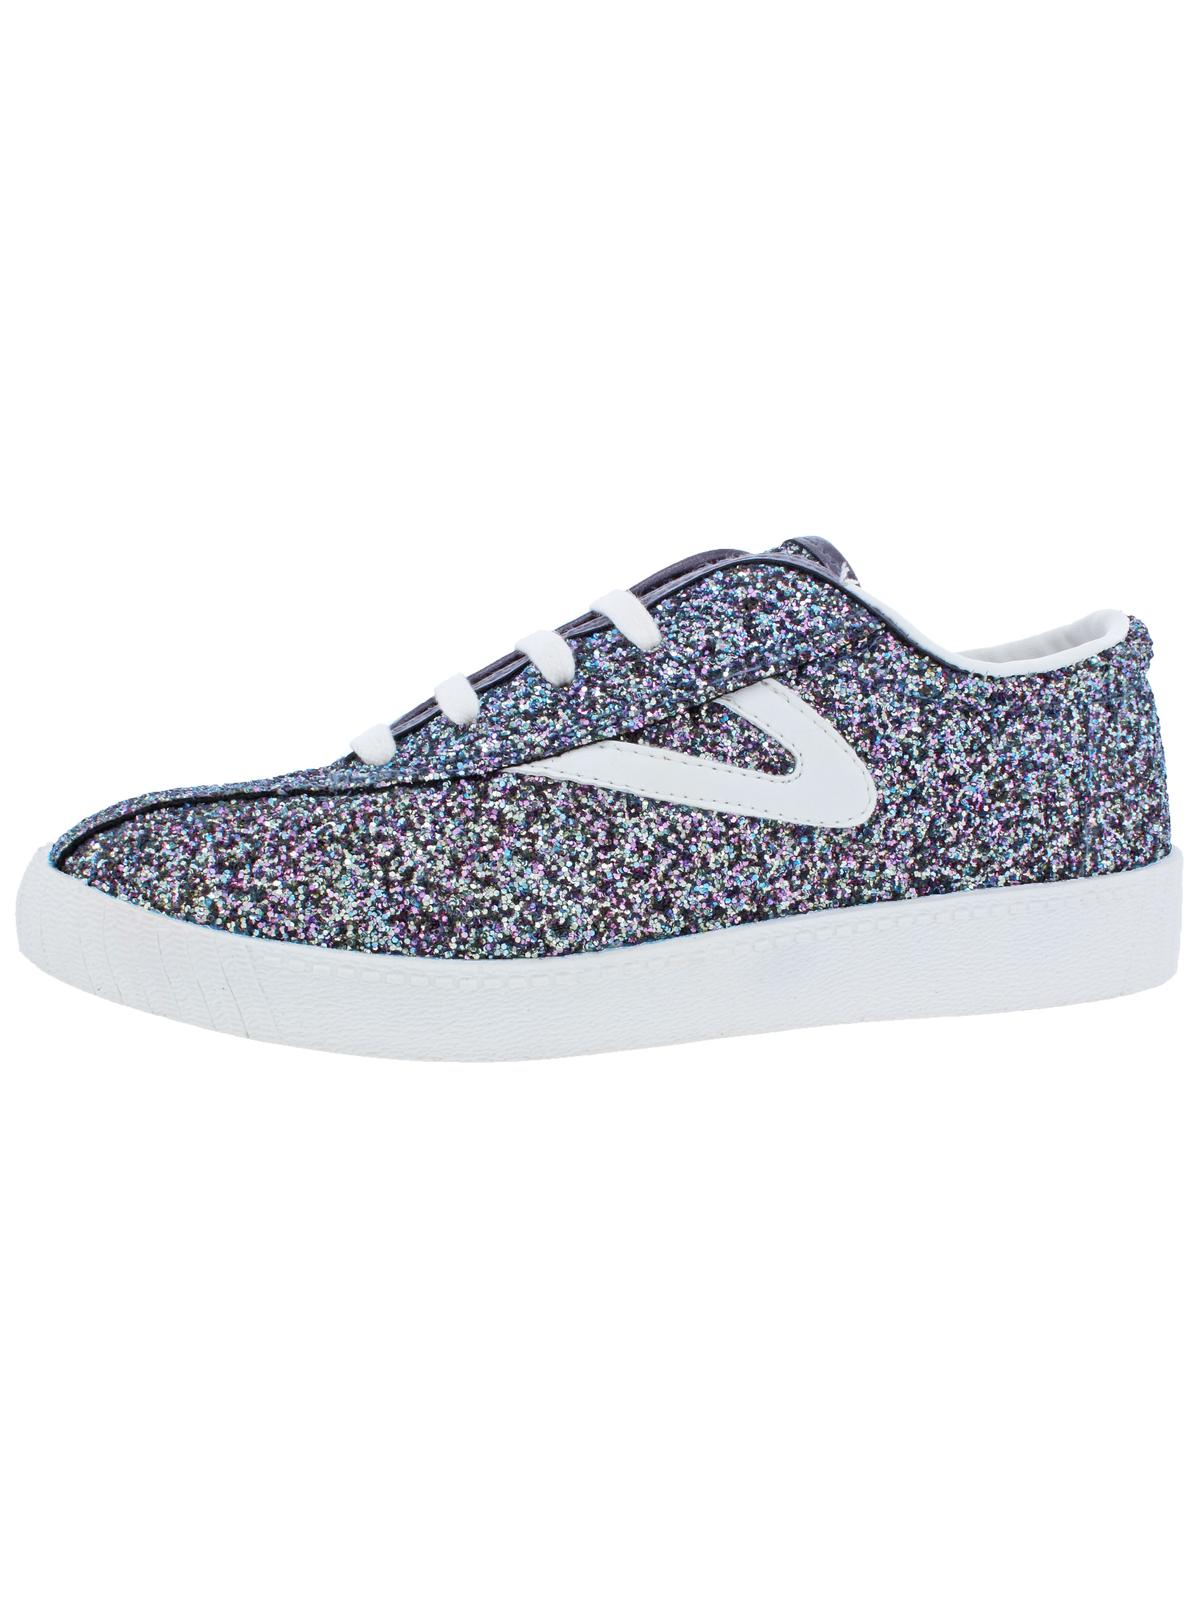 Tretorn Girls NYlite Sugar Padded Insole Glitter Fashion Sneakers by Tretorn